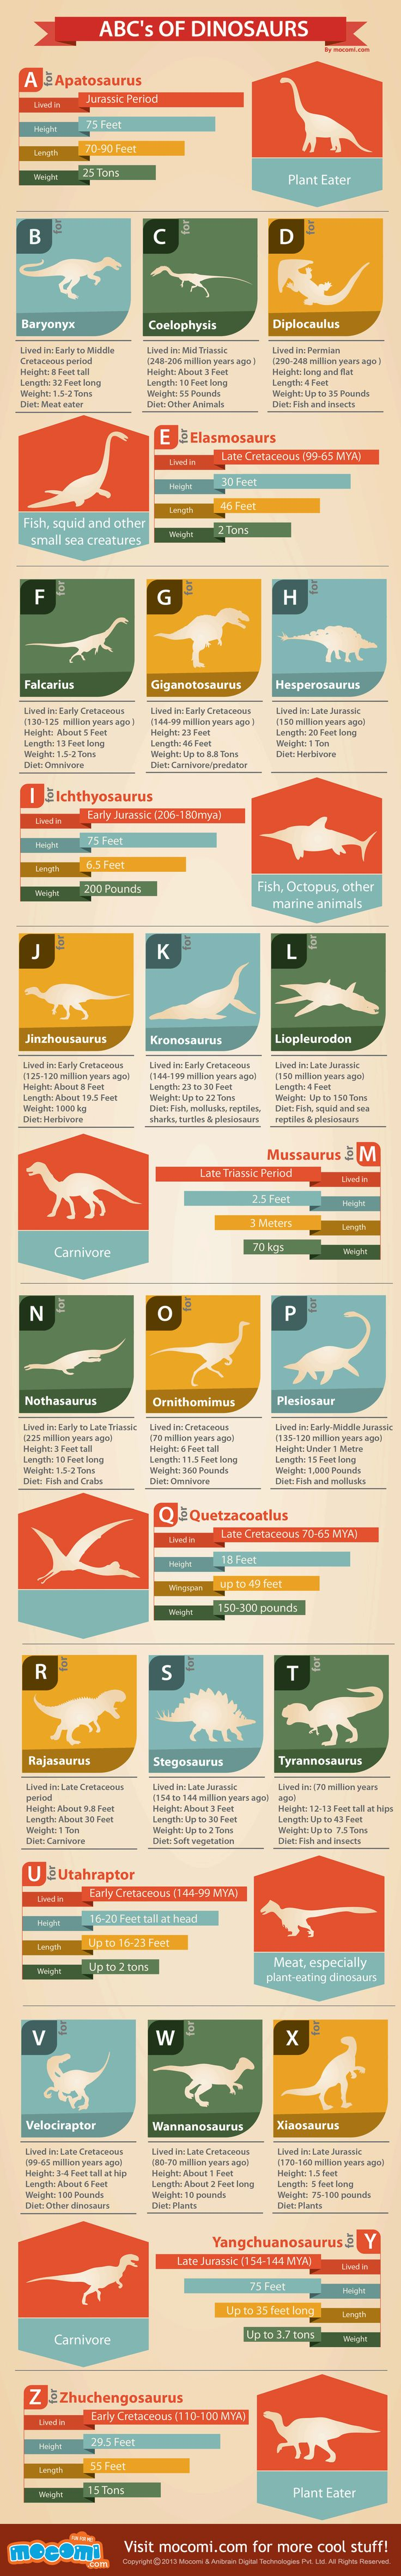 The A-Z of dinosaurs. BECAUSE YAY. (via http://news-by-design.com/abc-dinosaurs/)